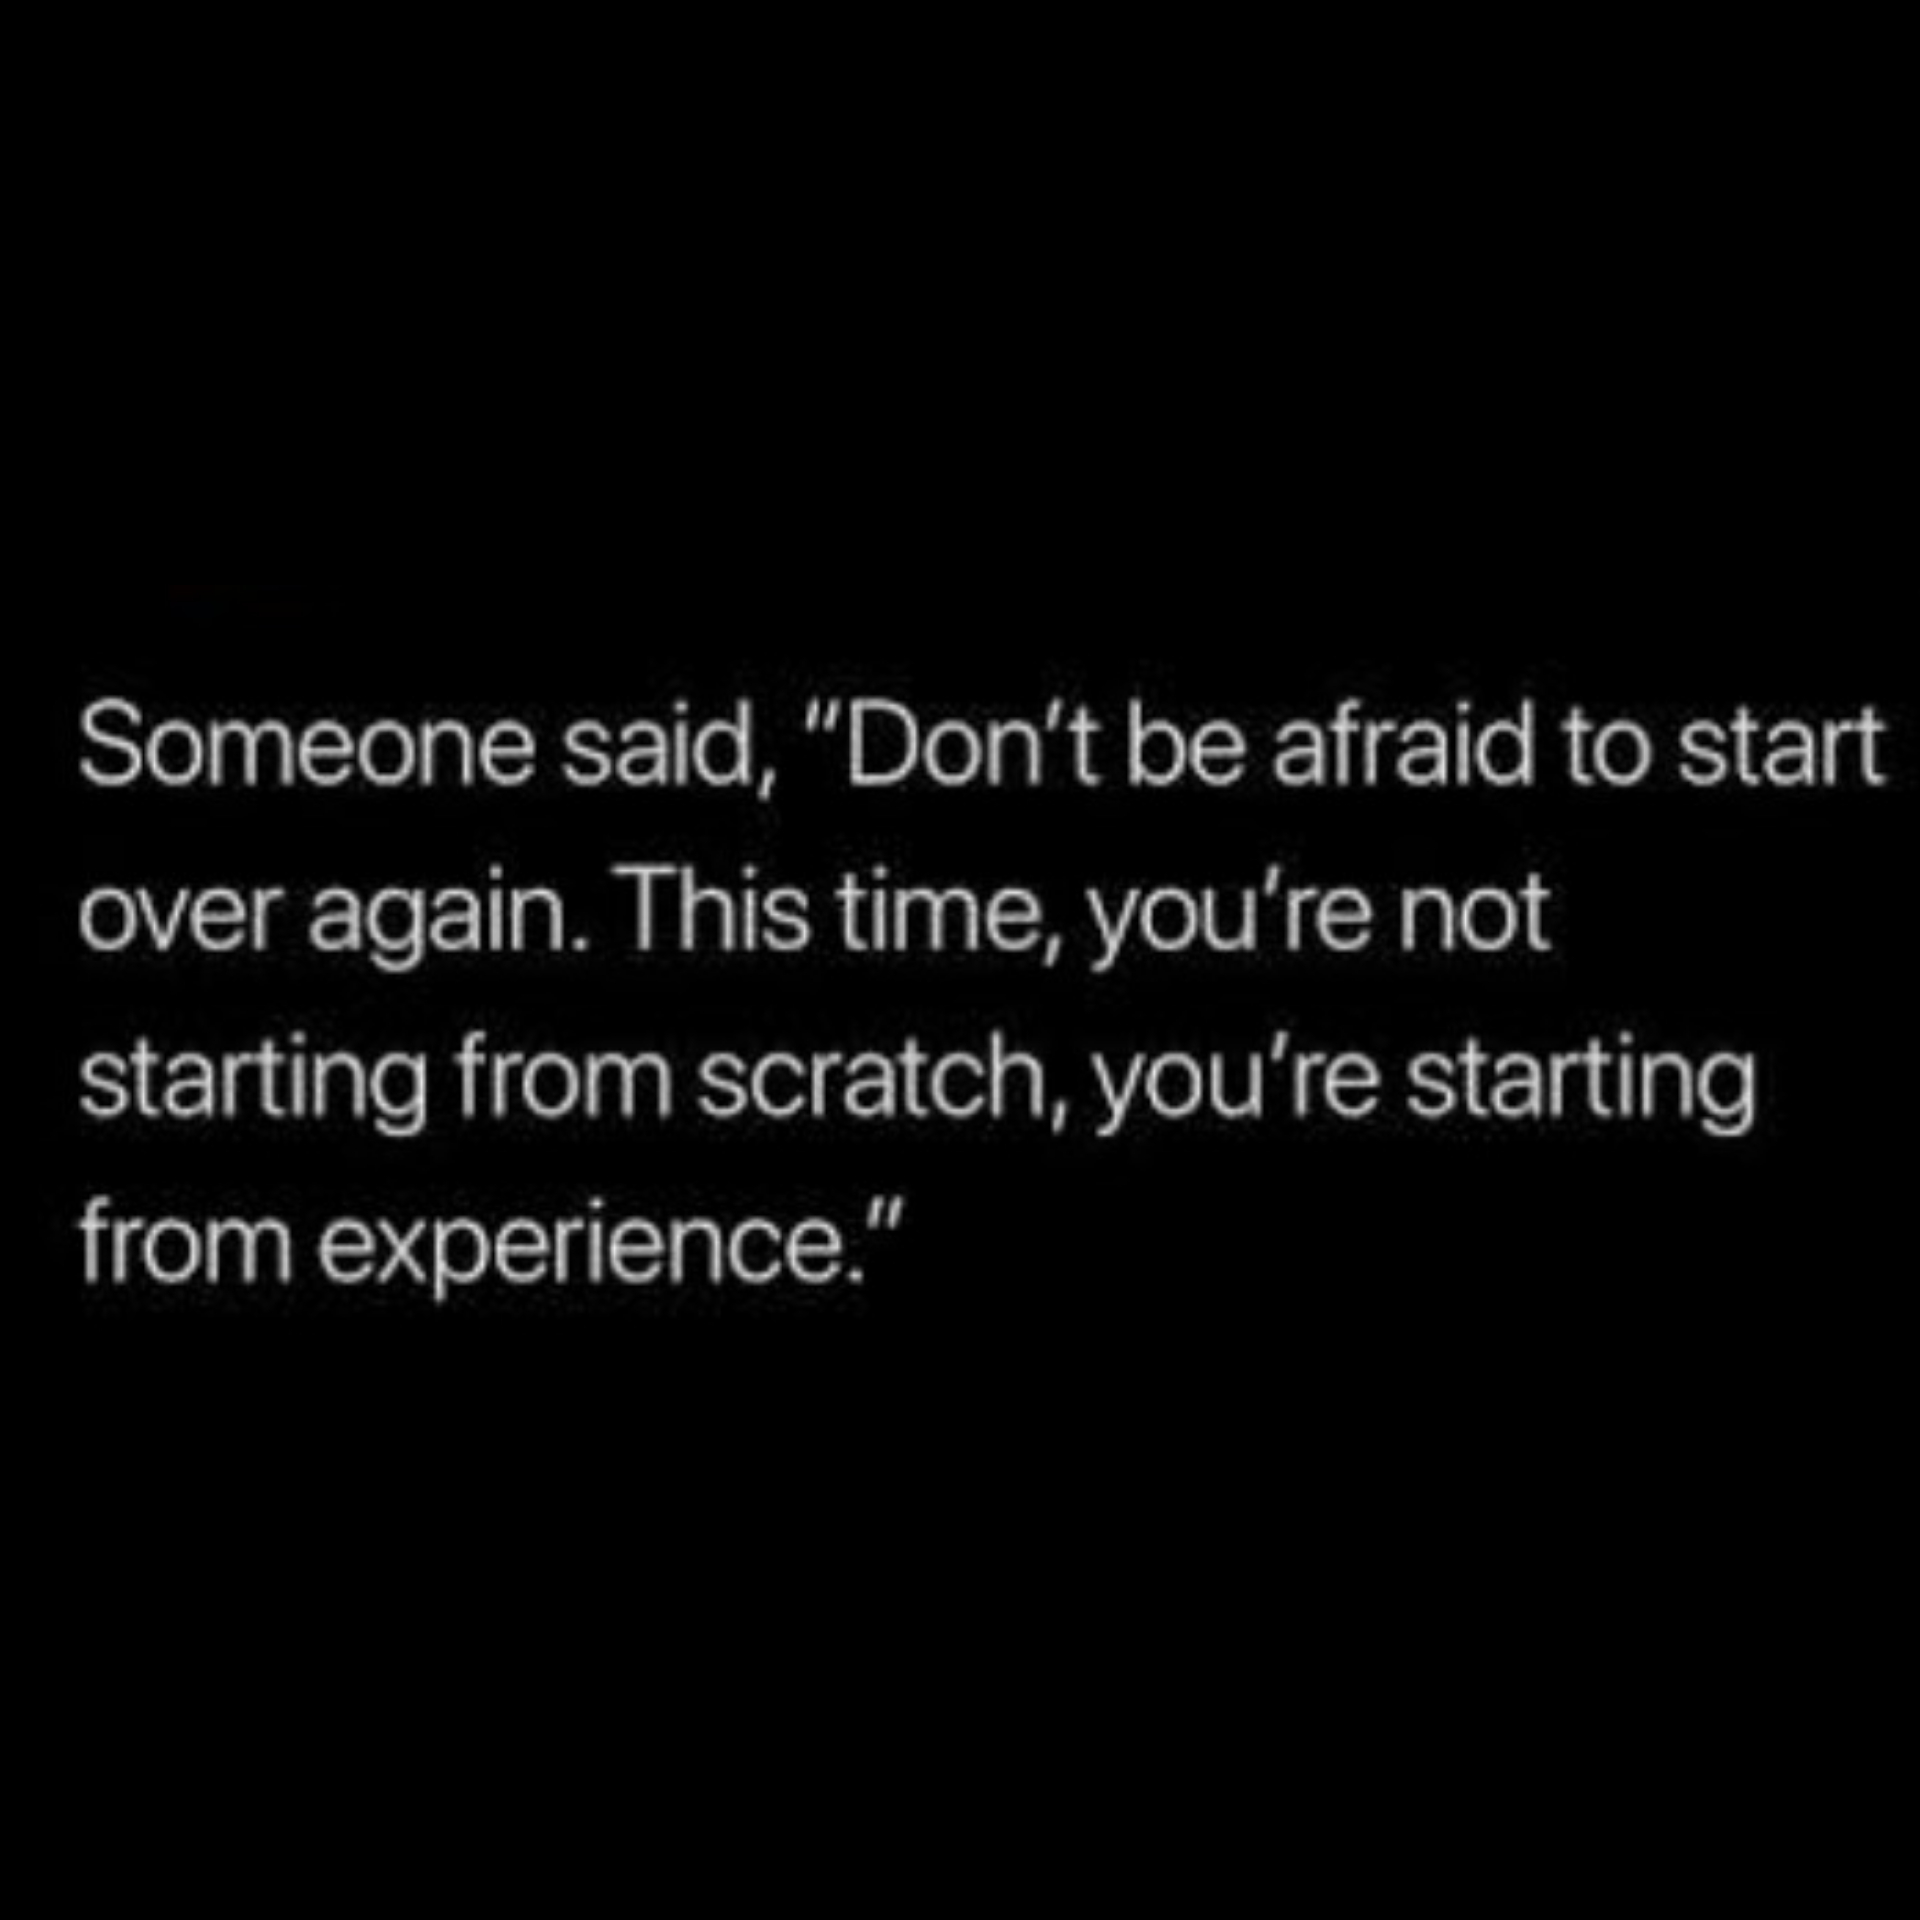 """Someone said, """"Don't be afraid to start over again. This time, you're not starting from scratch, you're starting from experience."""" https://inspirational.ly"""